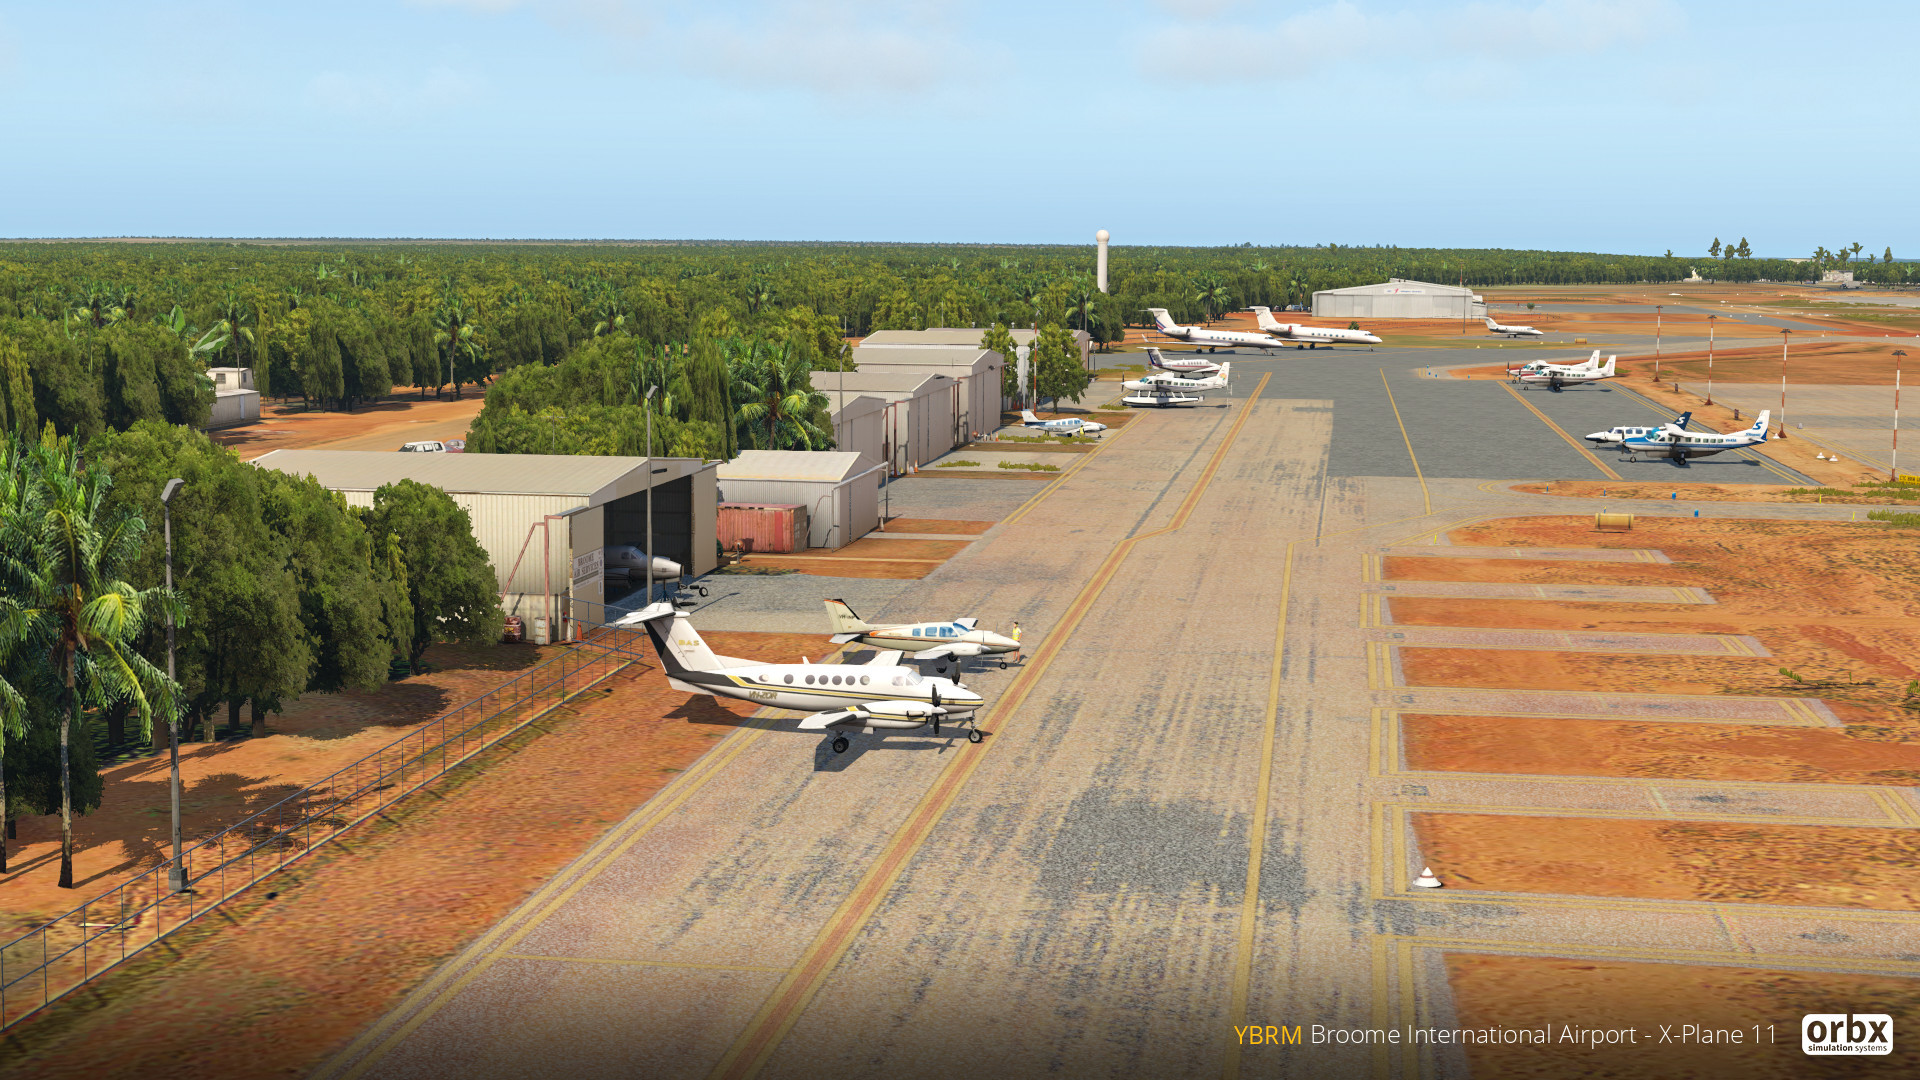 YBRM Broome International Airport - X-Plane 11